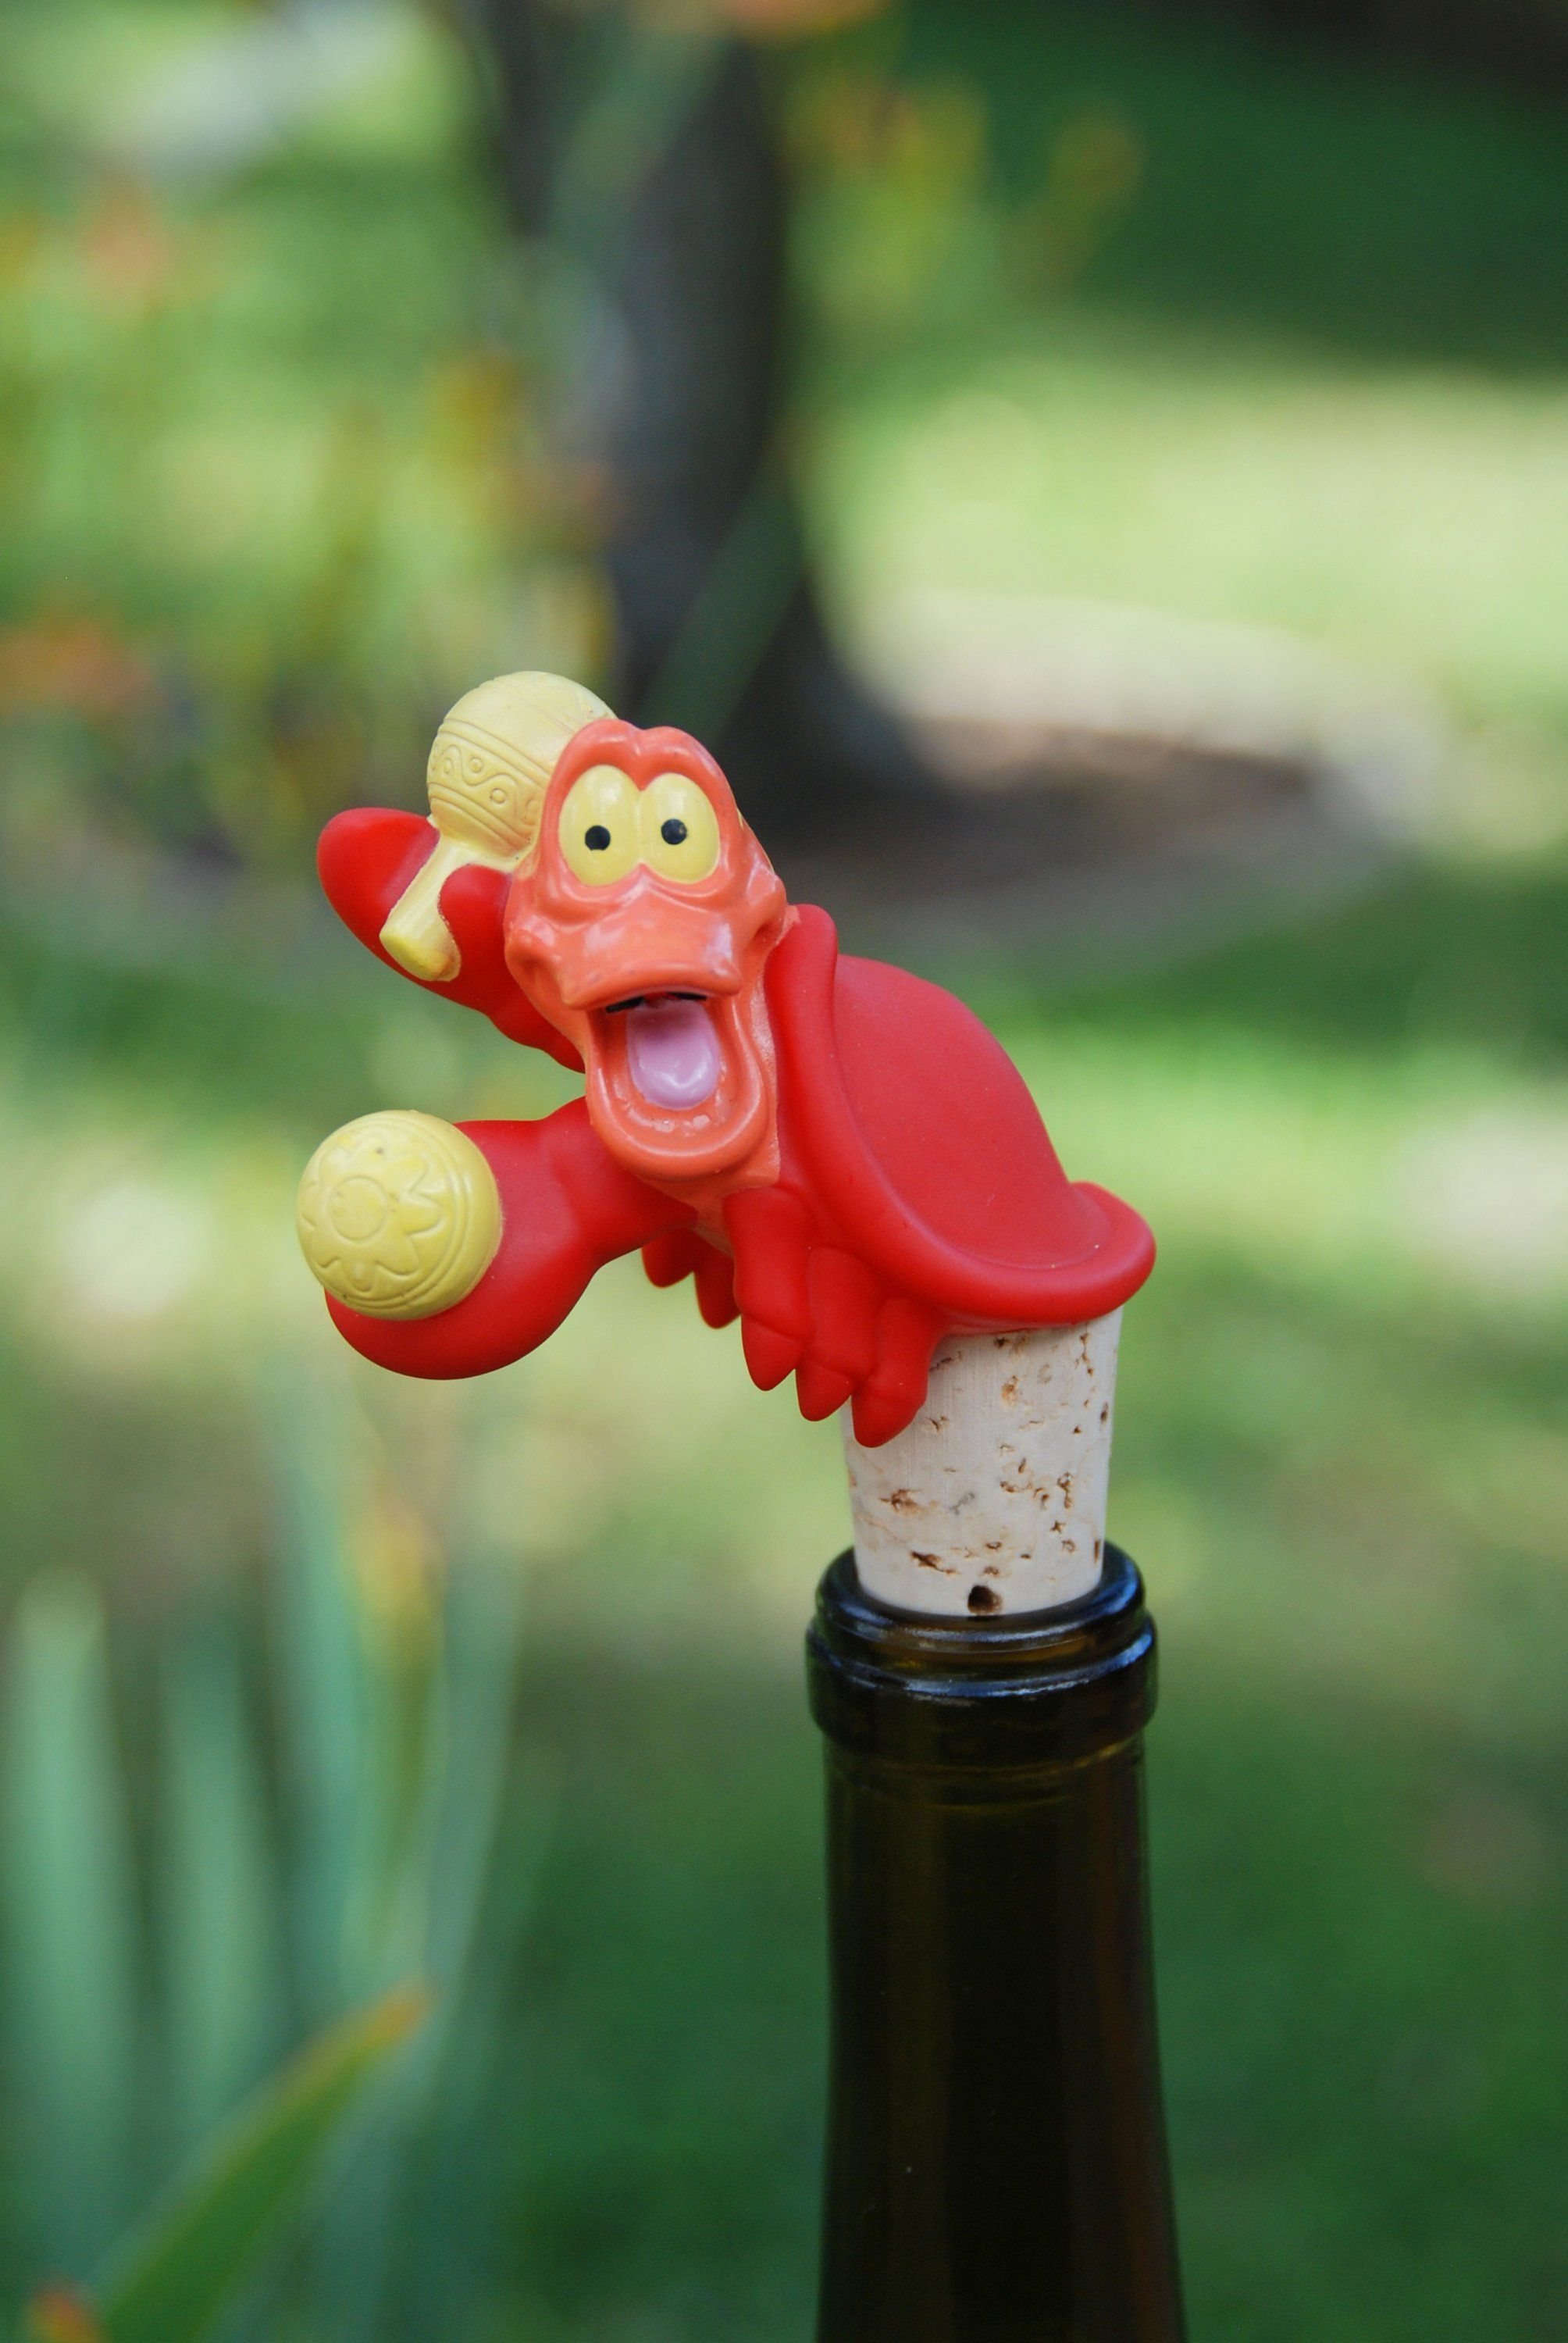 Sebastian Wine Bottle Stopper Disney The Little Mermaid Crab By Gulfcoasters On Etsy Wine Bottle Stoppers Bottle Stoppers Wine Bottle